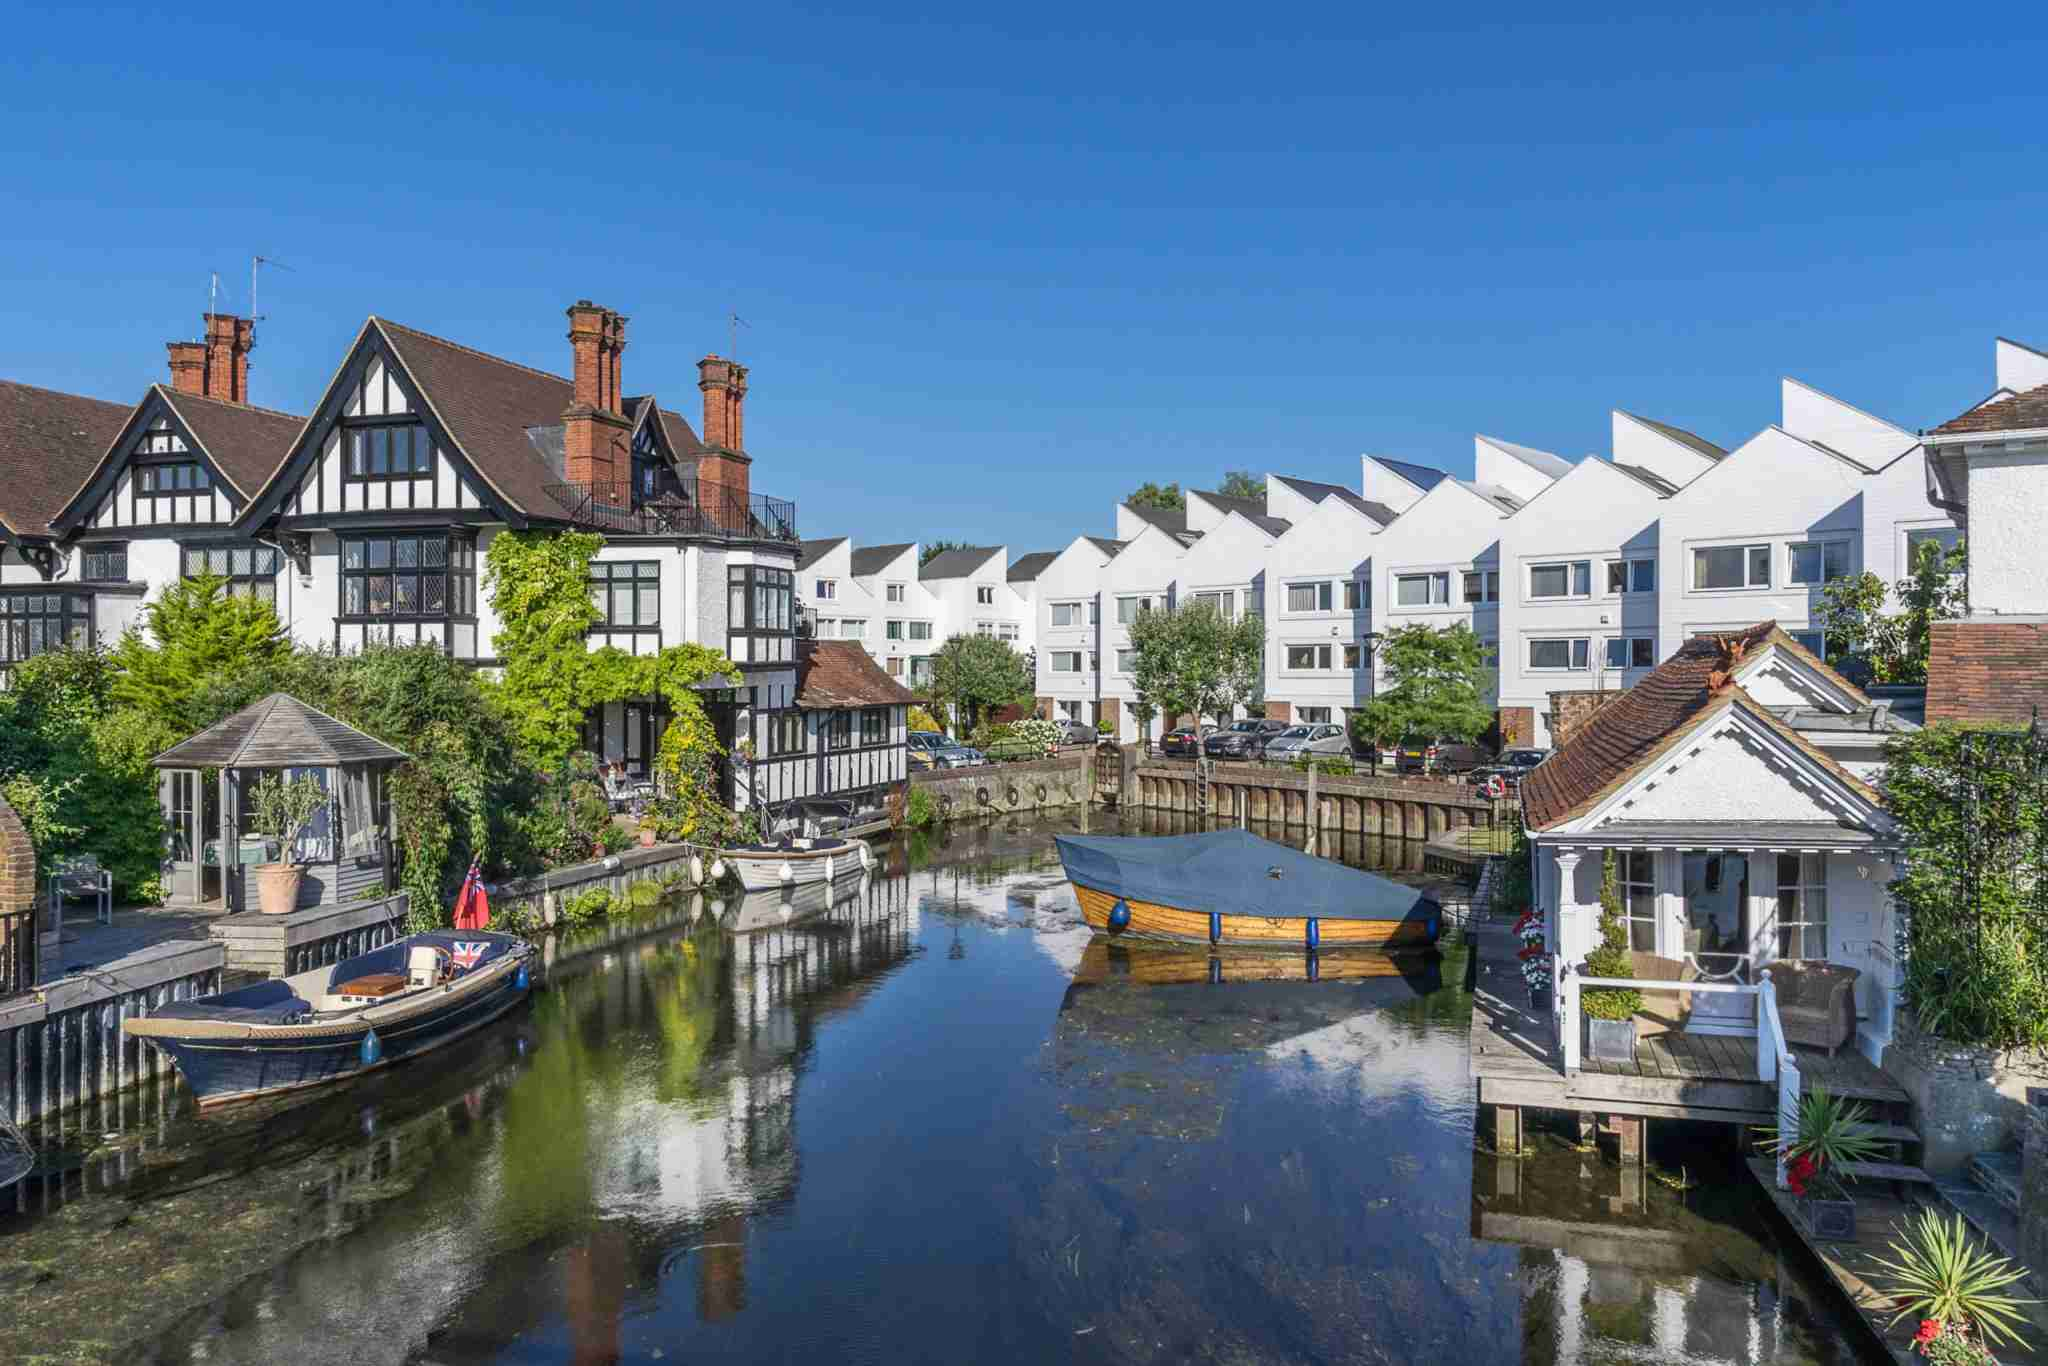 Marlow Lock on the River Thames. (Photo by GordonBellPhotography/Getty Images)